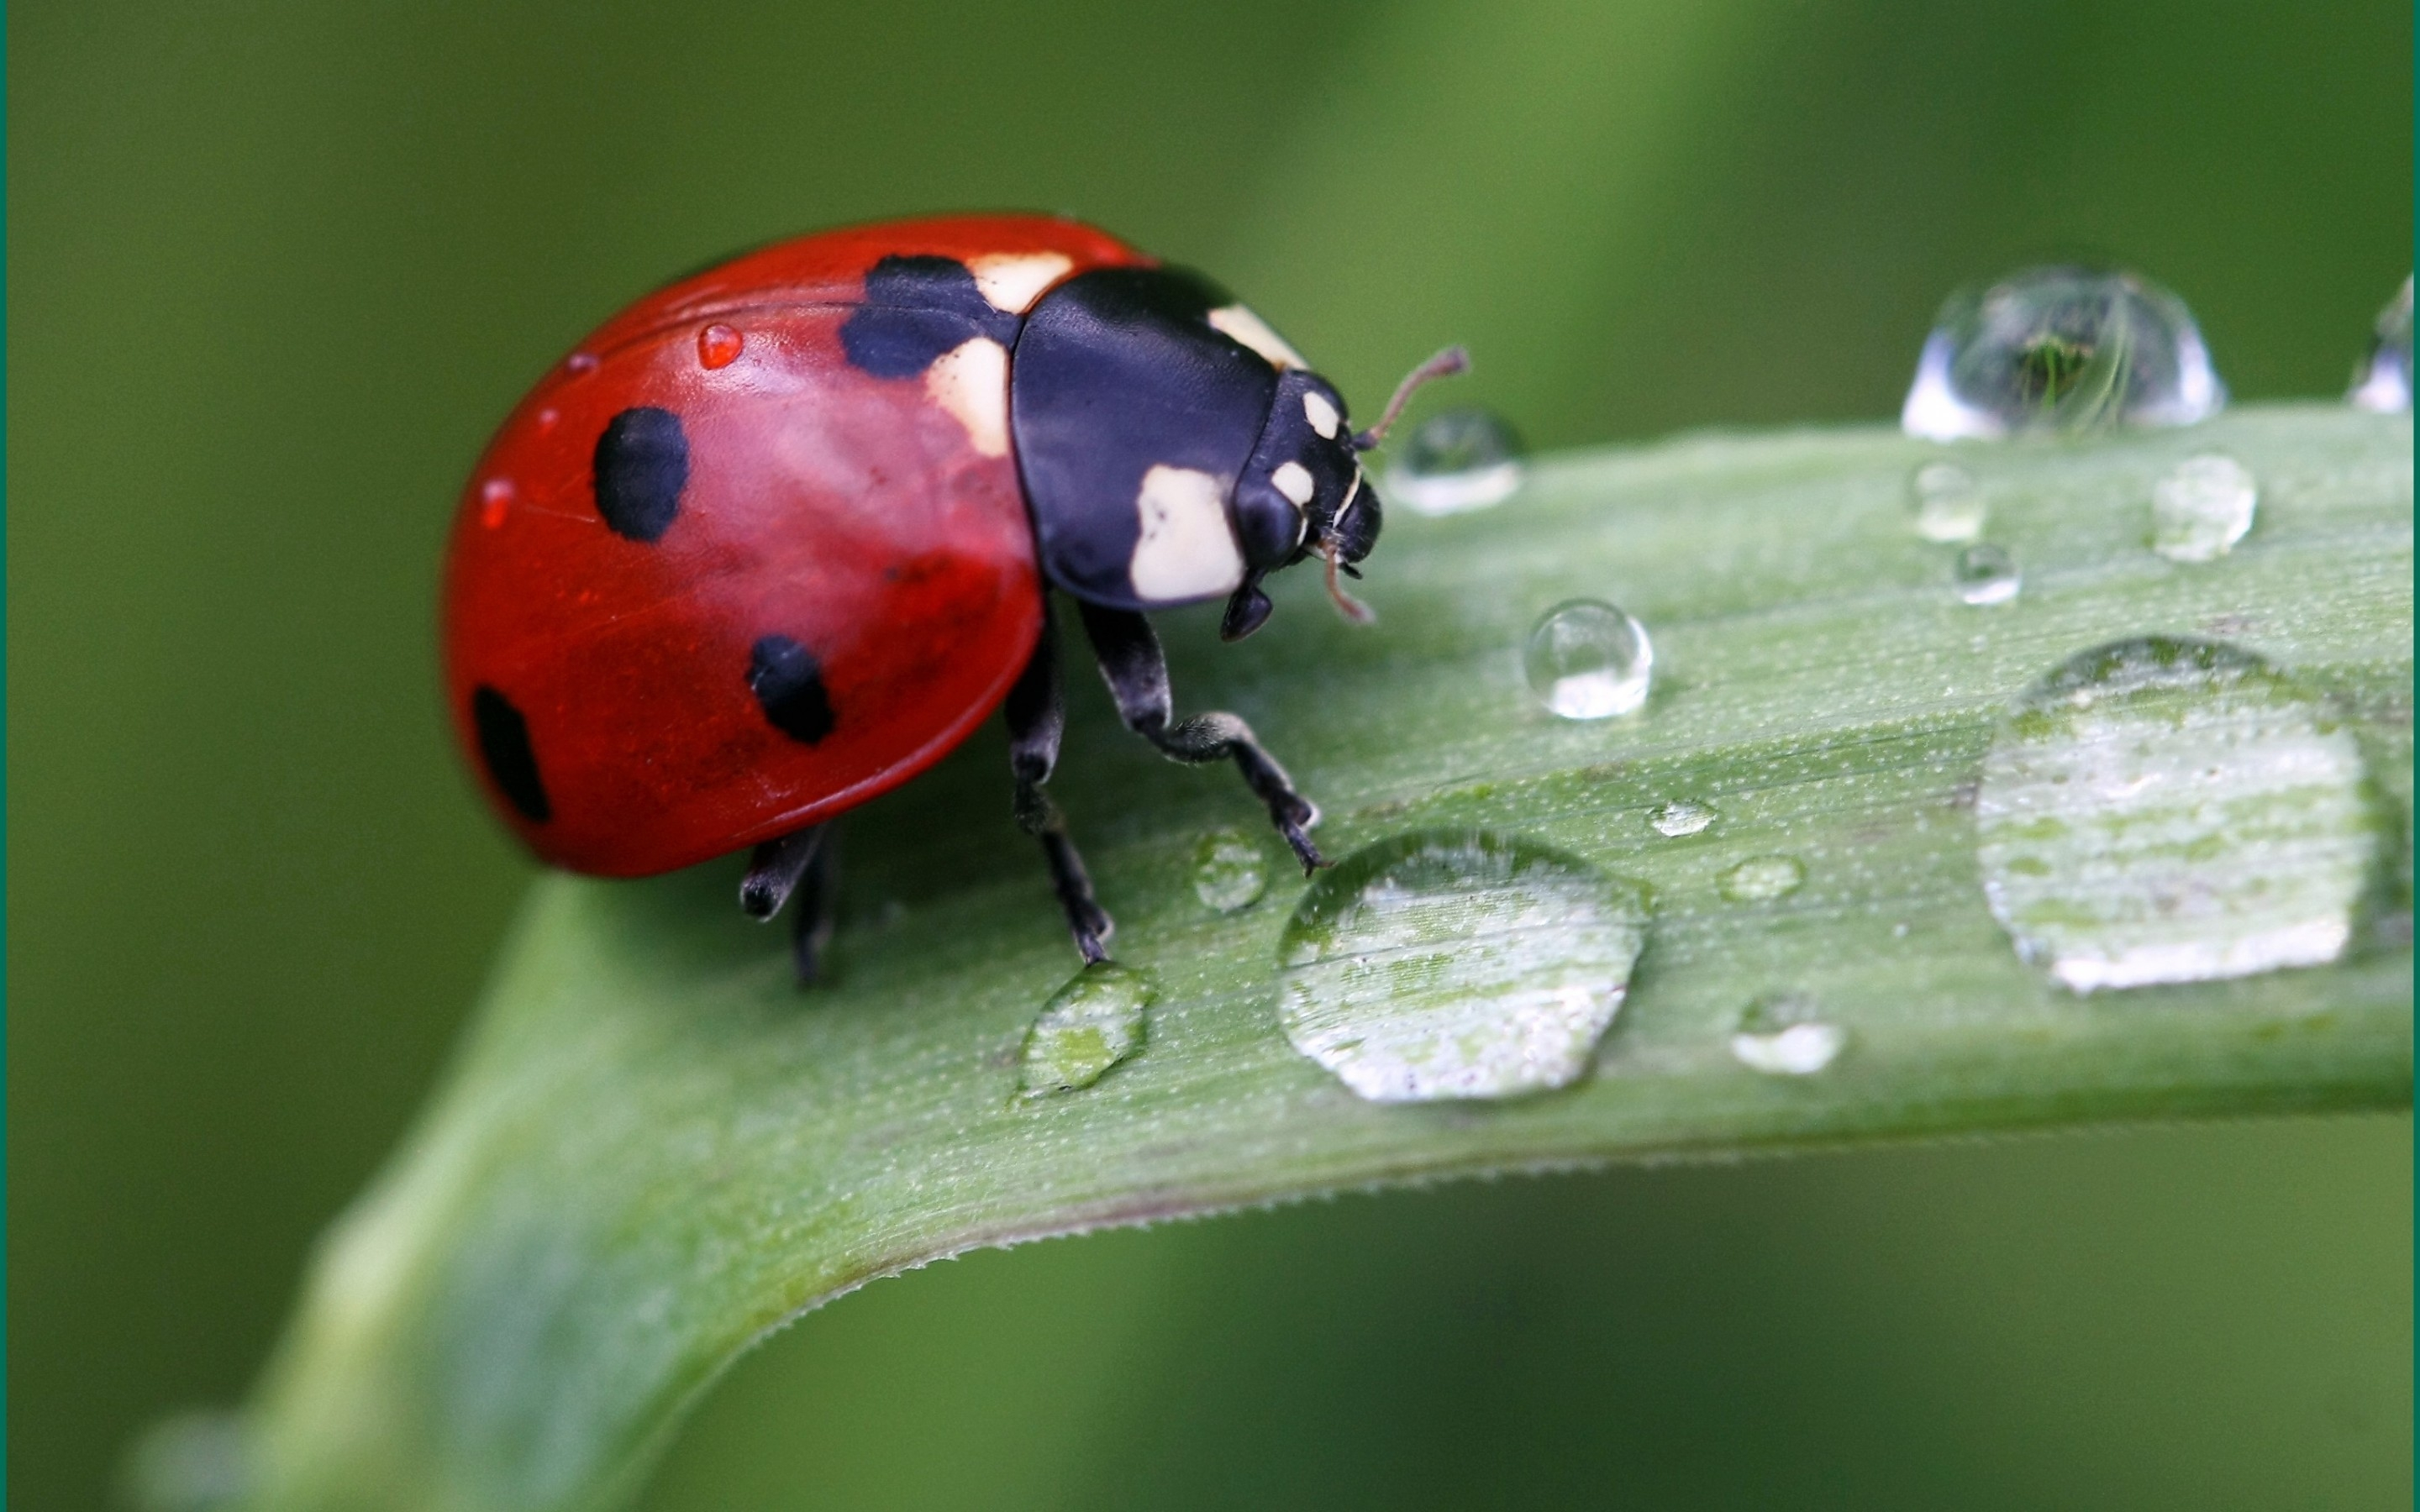 Cute Ladybird for 2880 x 1800 Retina Display resolution